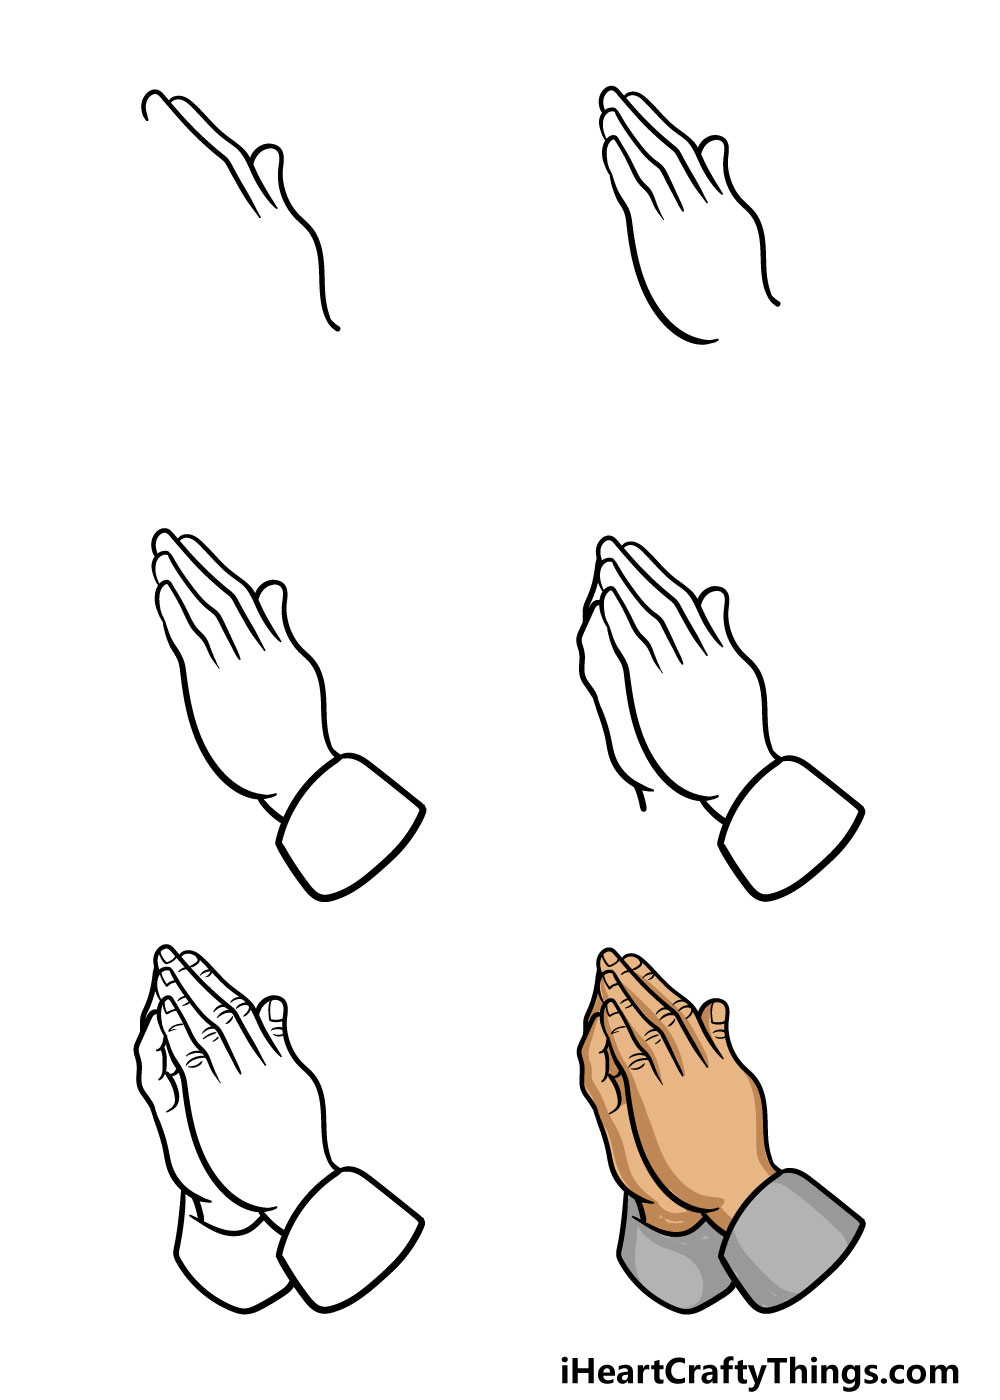 how to draw praying hands in 6 steps